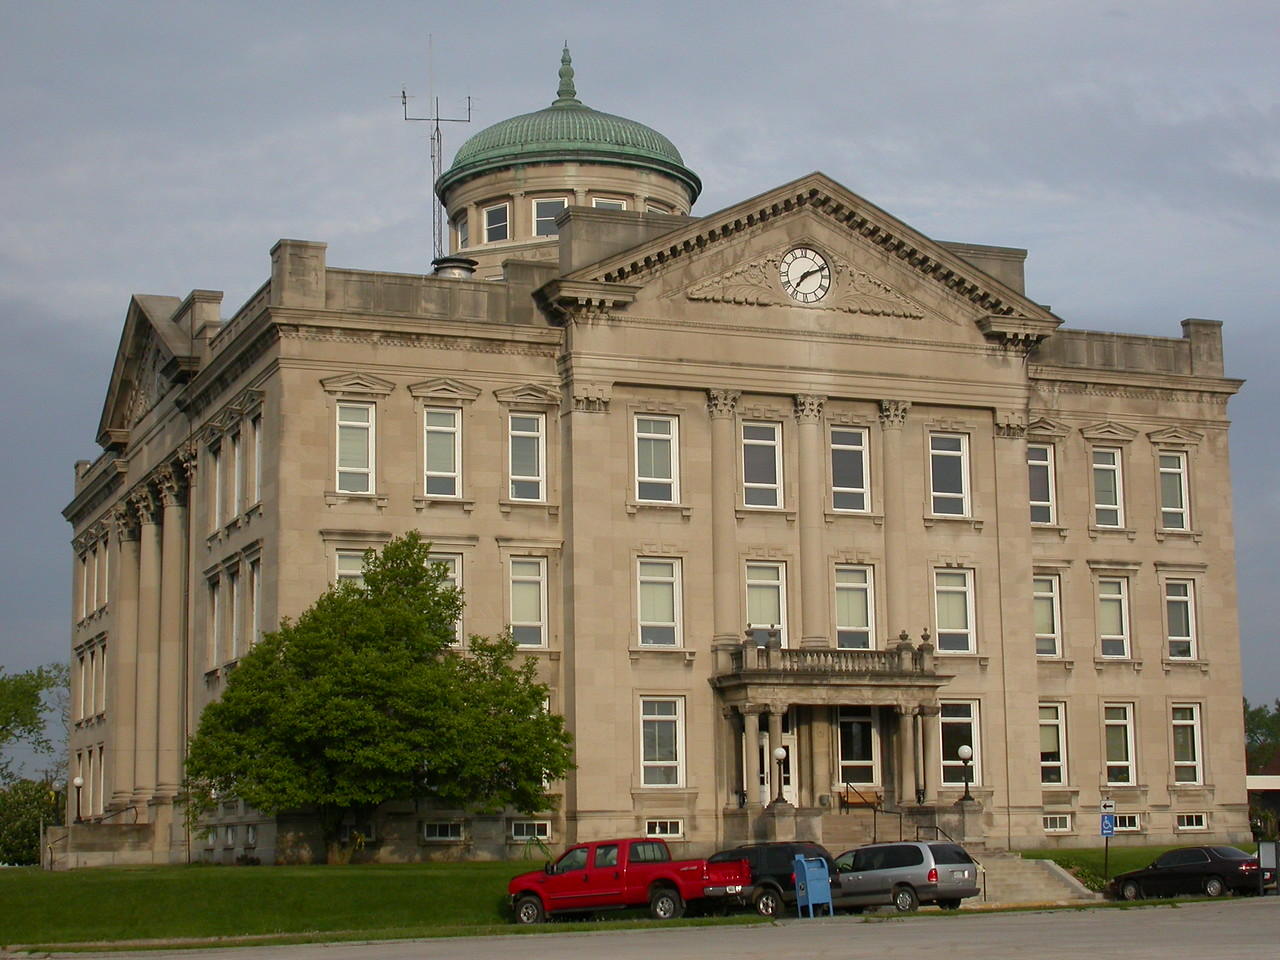 Clay County Courthouse, Brazil, Indiana, May 2004.